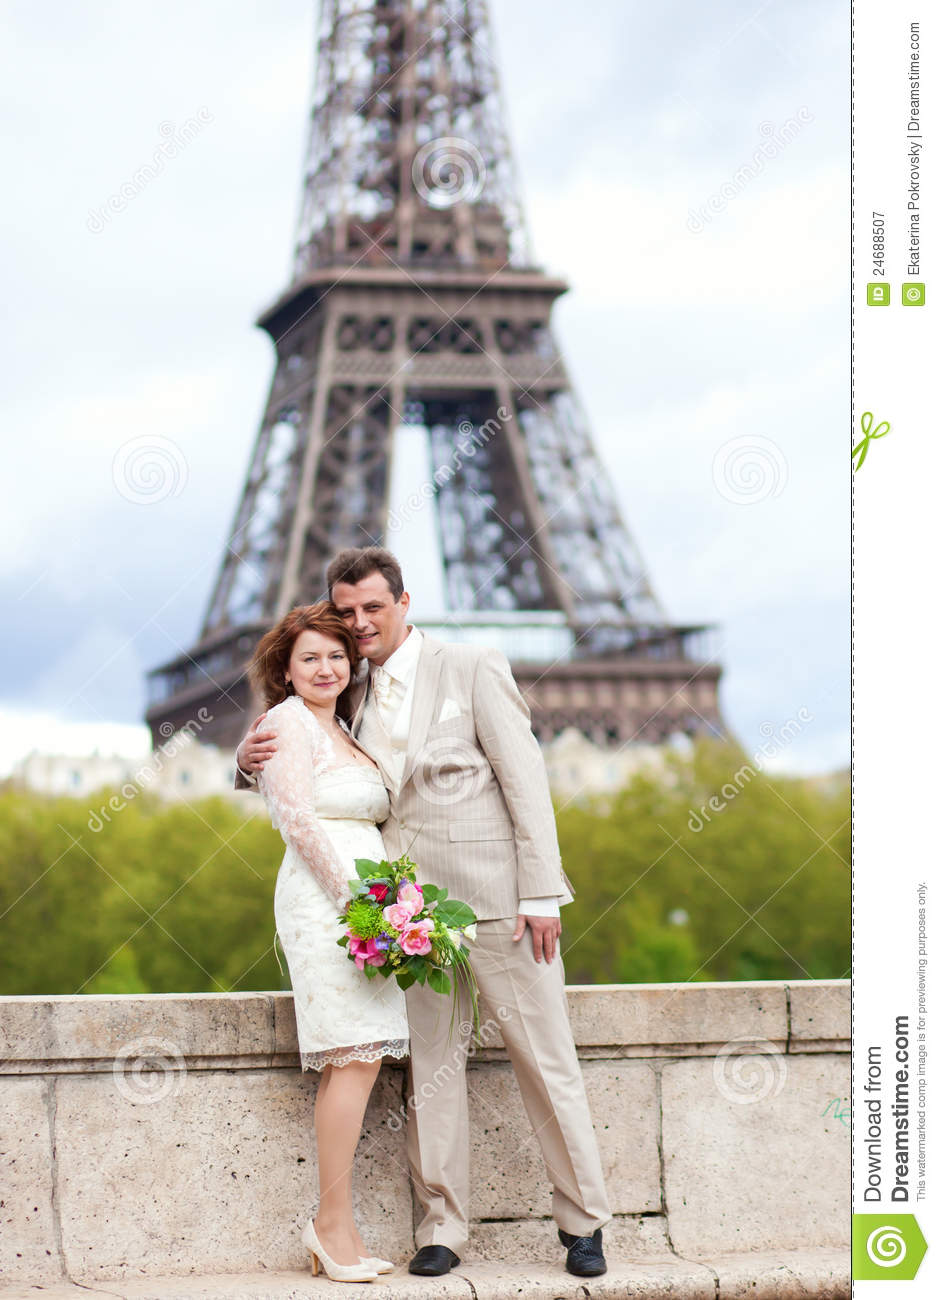 married couple in paris posing near eiffel tower stock image image 24688507. Black Bedroom Furniture Sets. Home Design Ideas